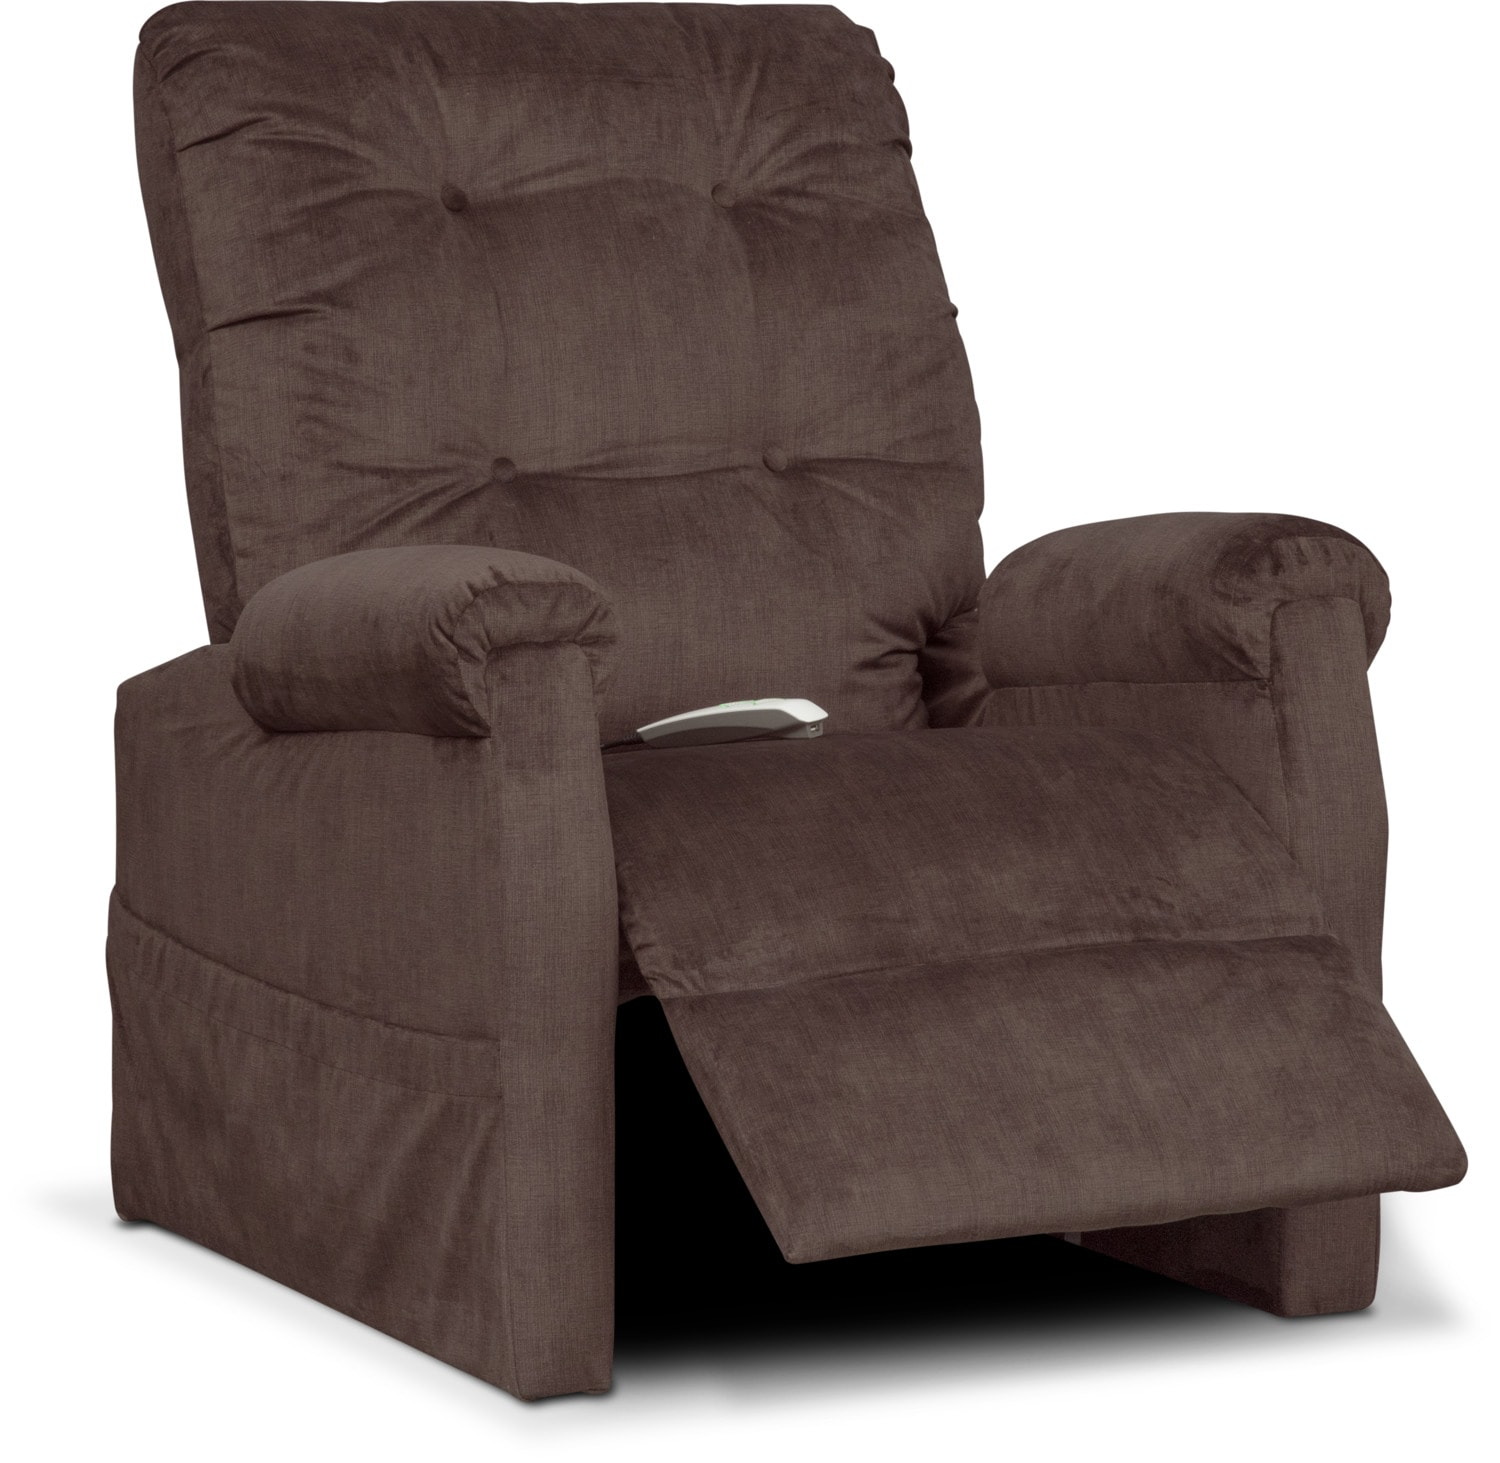 Brody Power Lift Recliner Chocolate